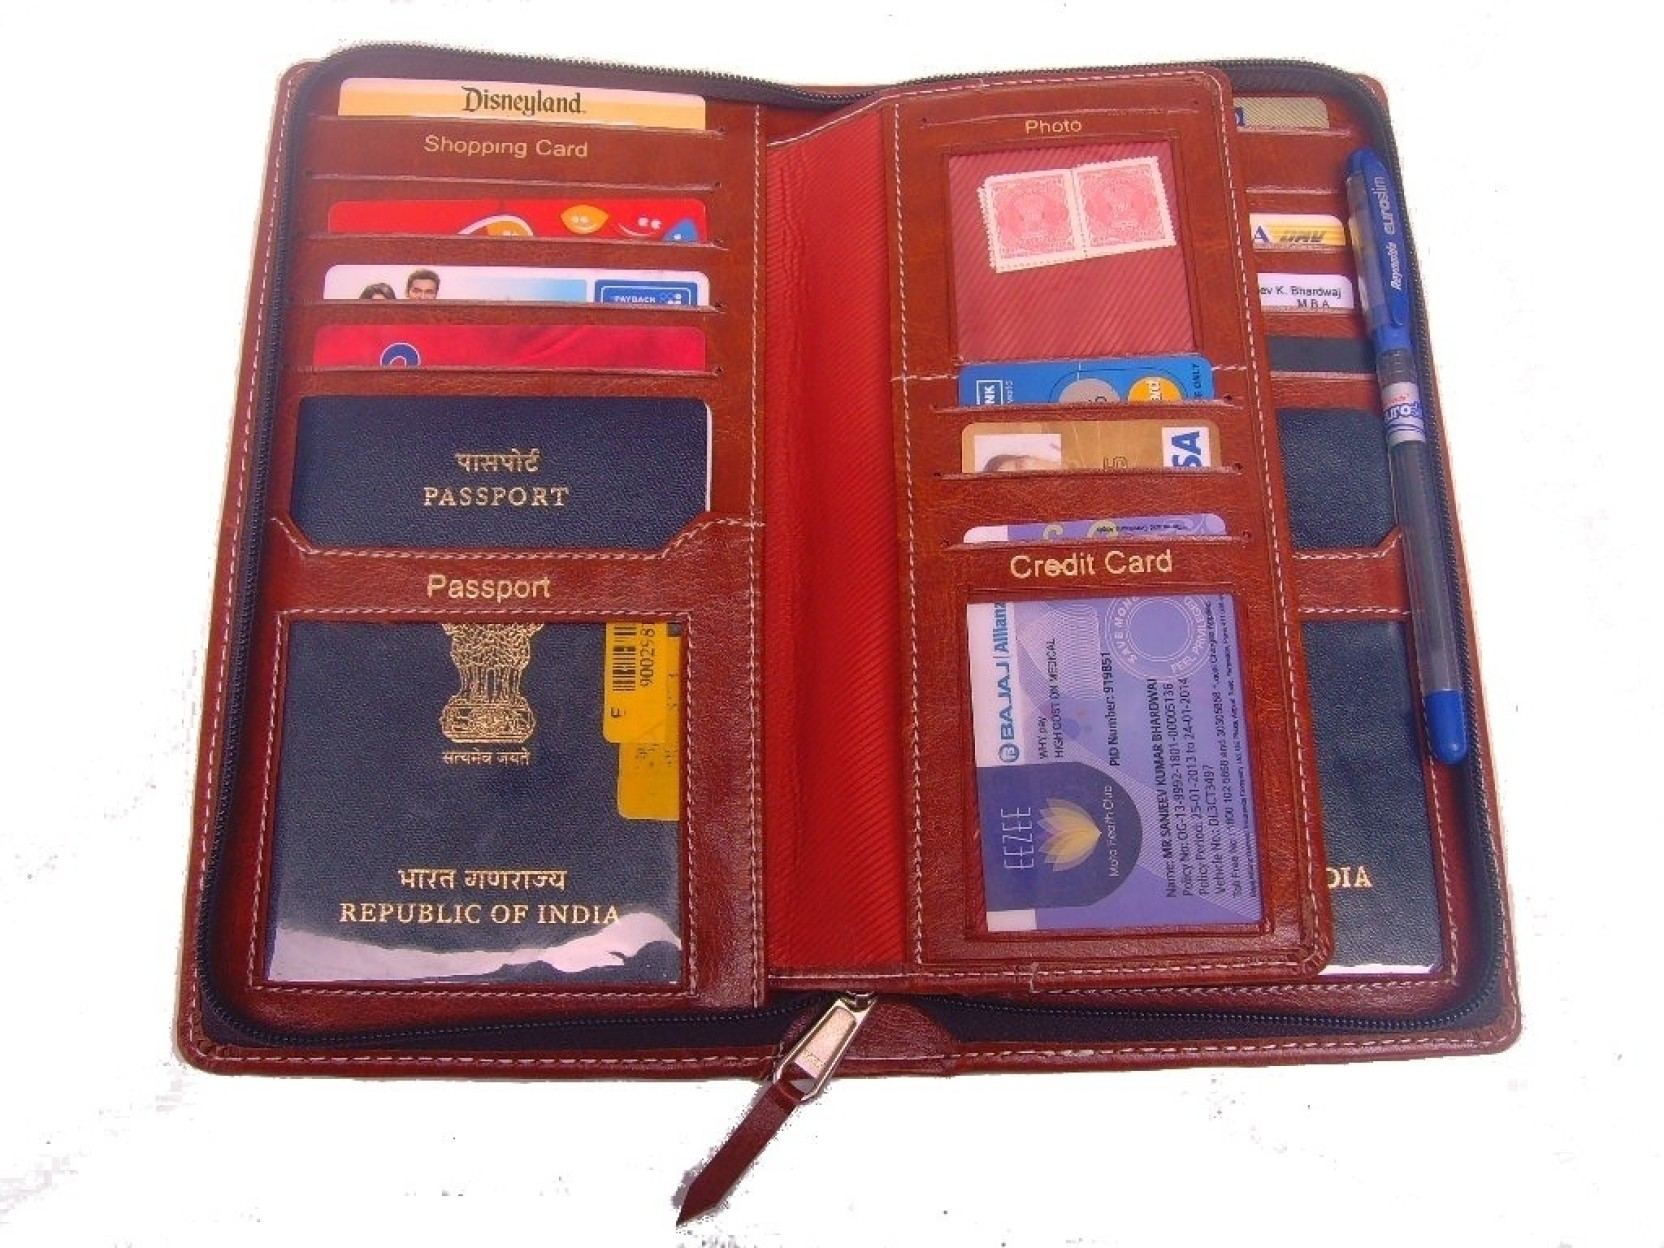 how to attach photo to passport application uk